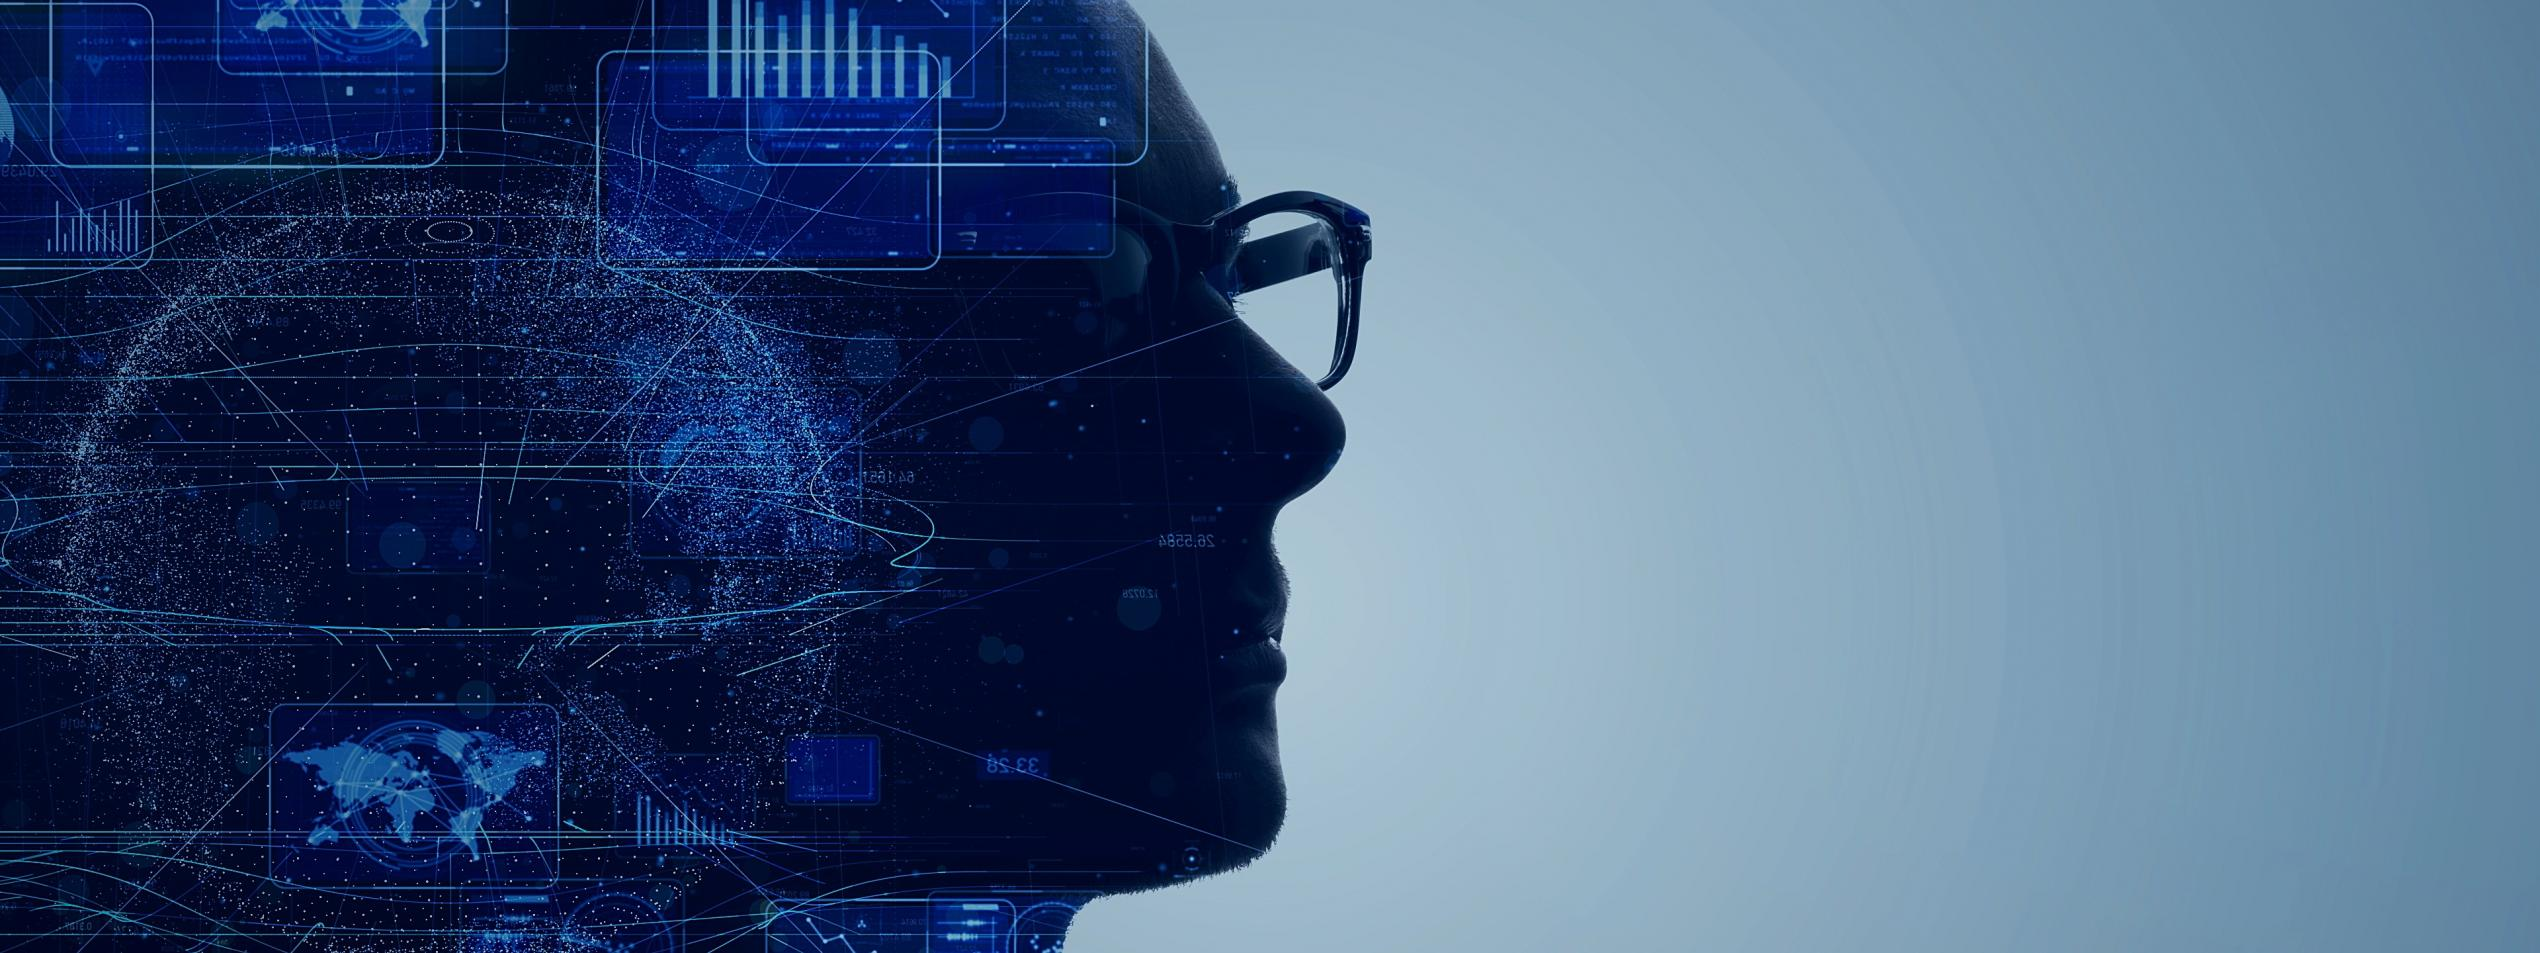 Why Should Manufacturers Adopt AI and Big Data?